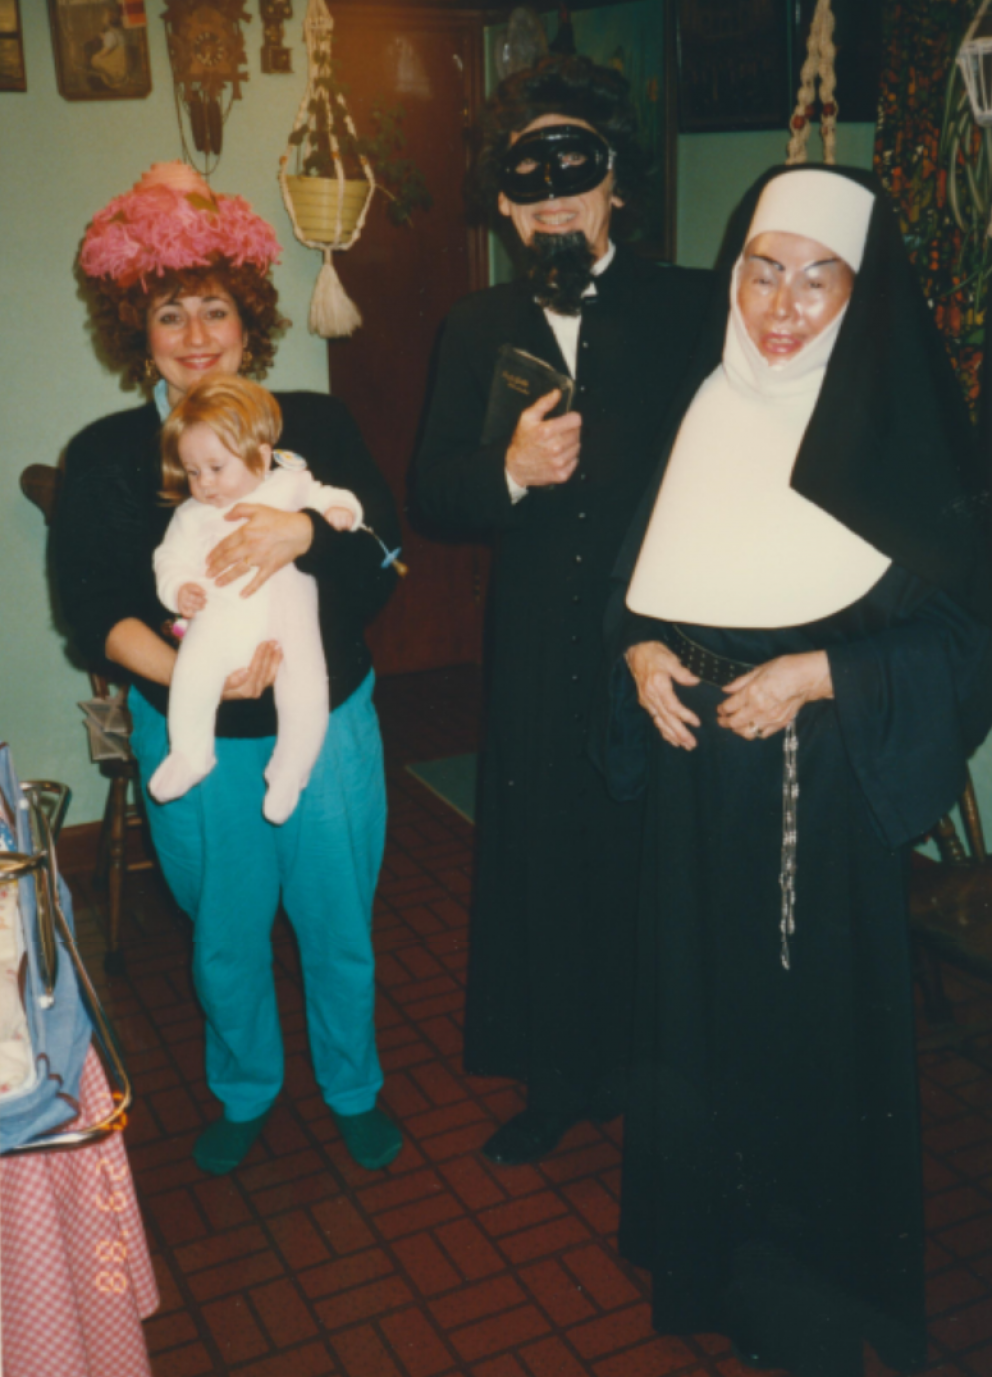 Jennifer and Luke Sinclair (Scott's family) with Jim and Ruth Halloween 1989.